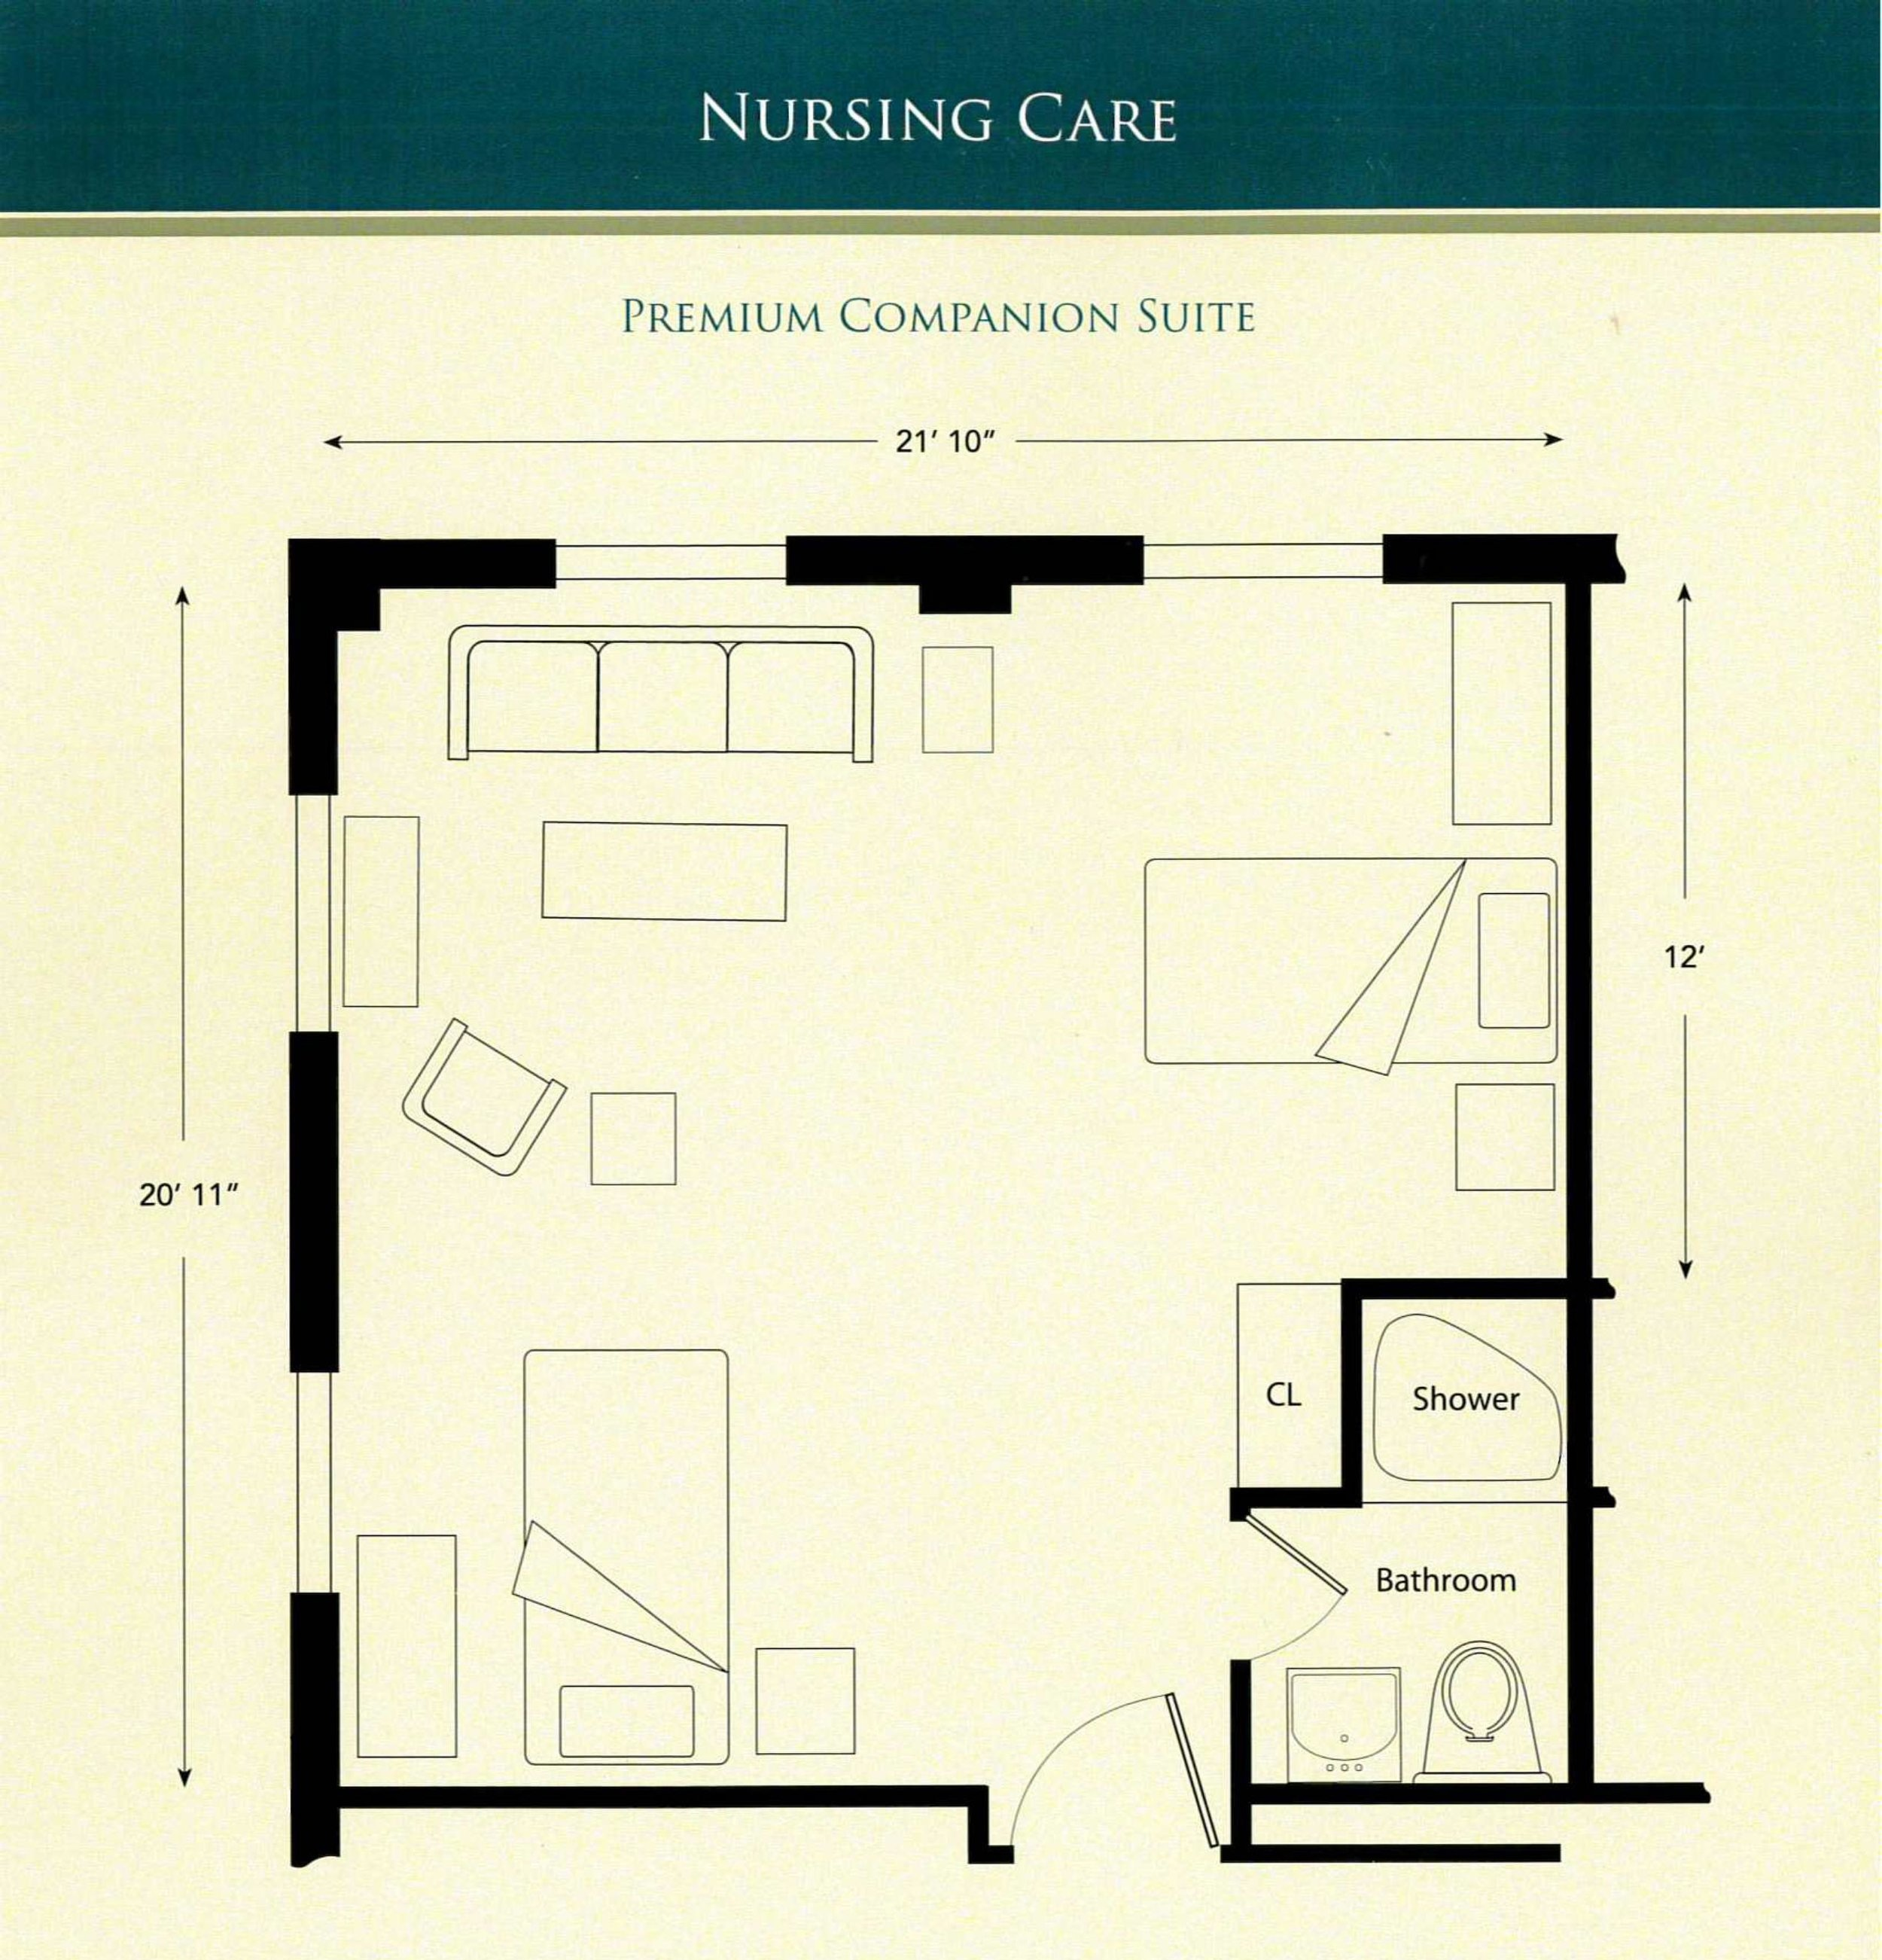 Nursing Care Premium Companion Suite